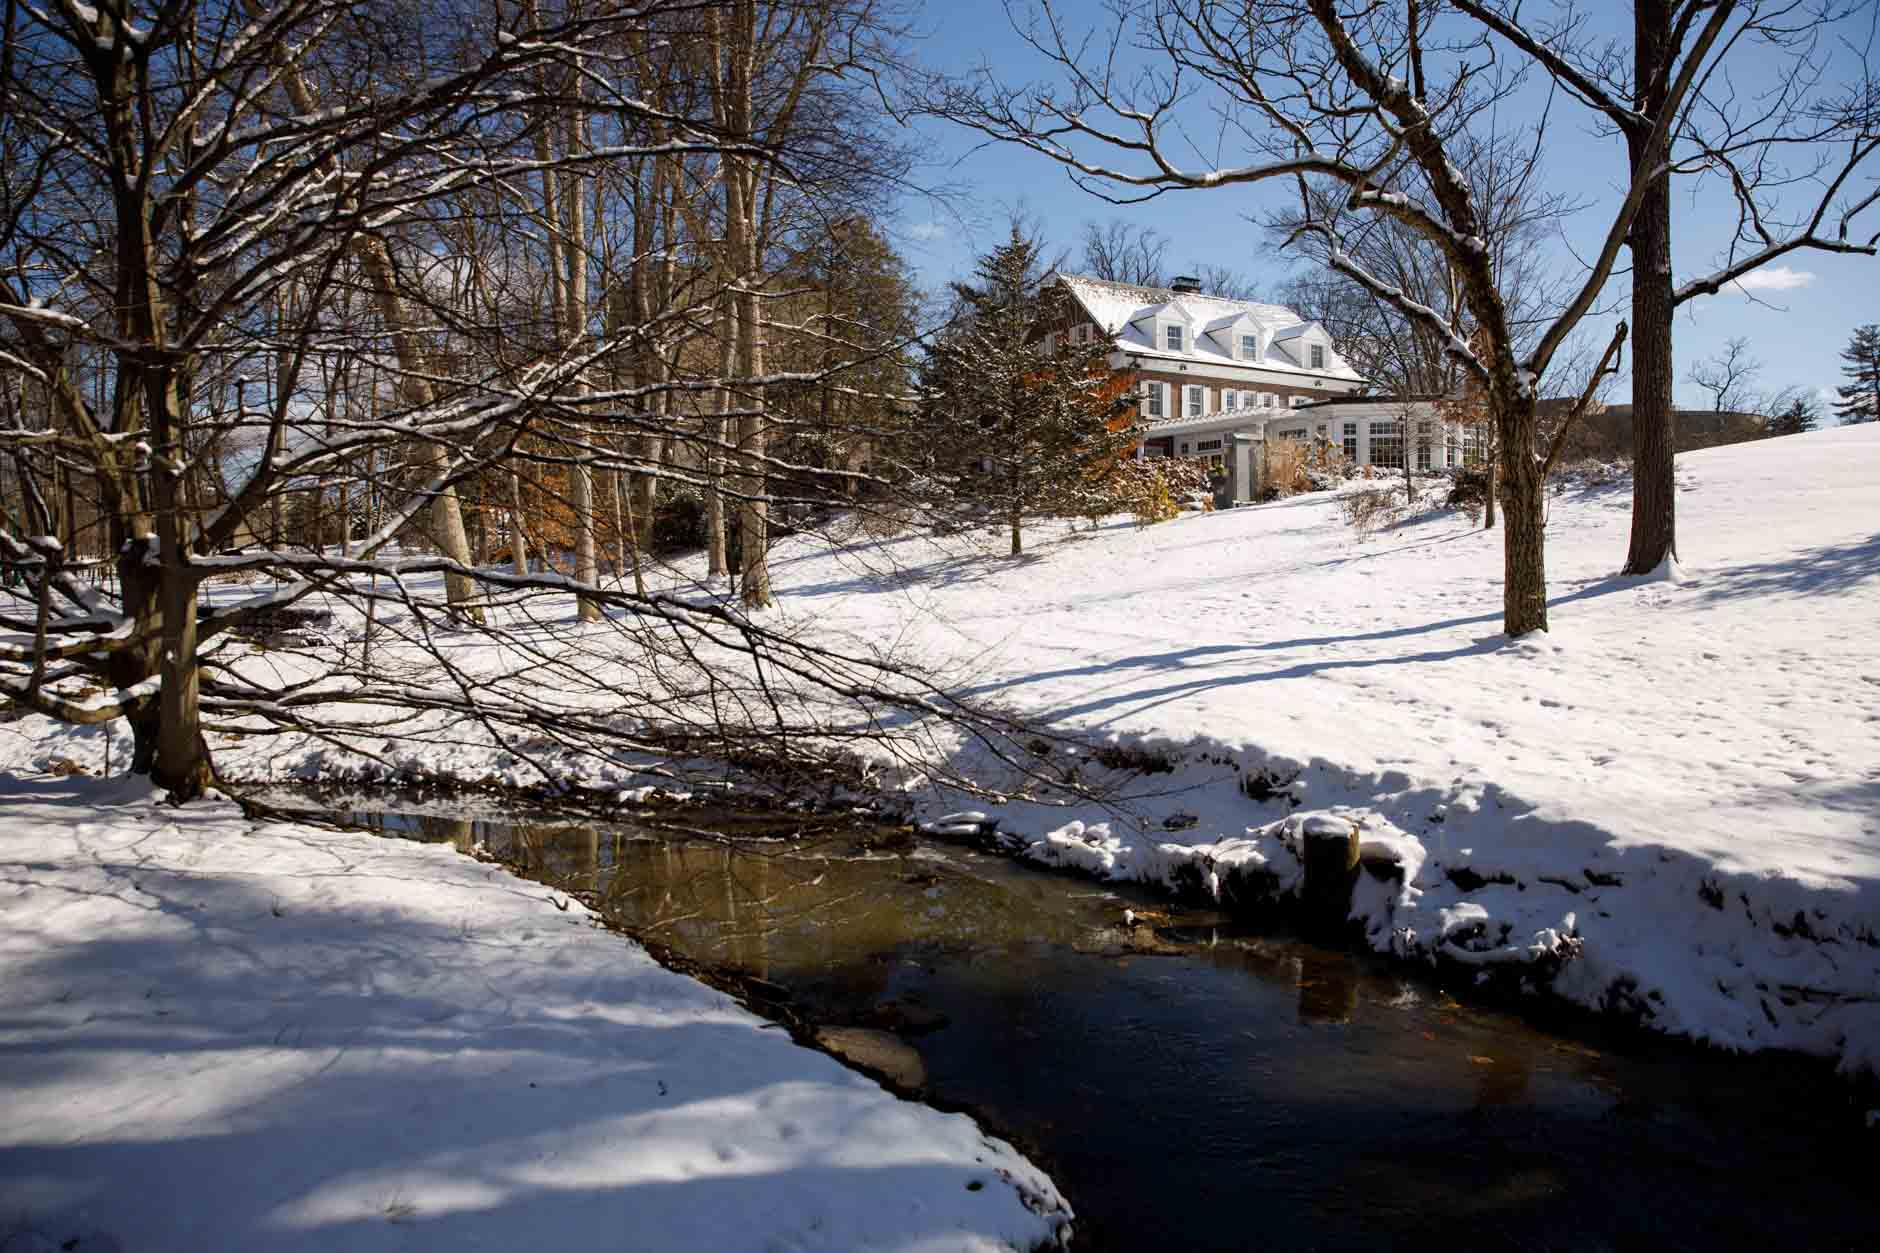 The Campus River flows through campus near Bryan House on a winter day at Indiana University Bloomington on Thursday, Jan. 28, 2021. (James Brosher/Indiana University)